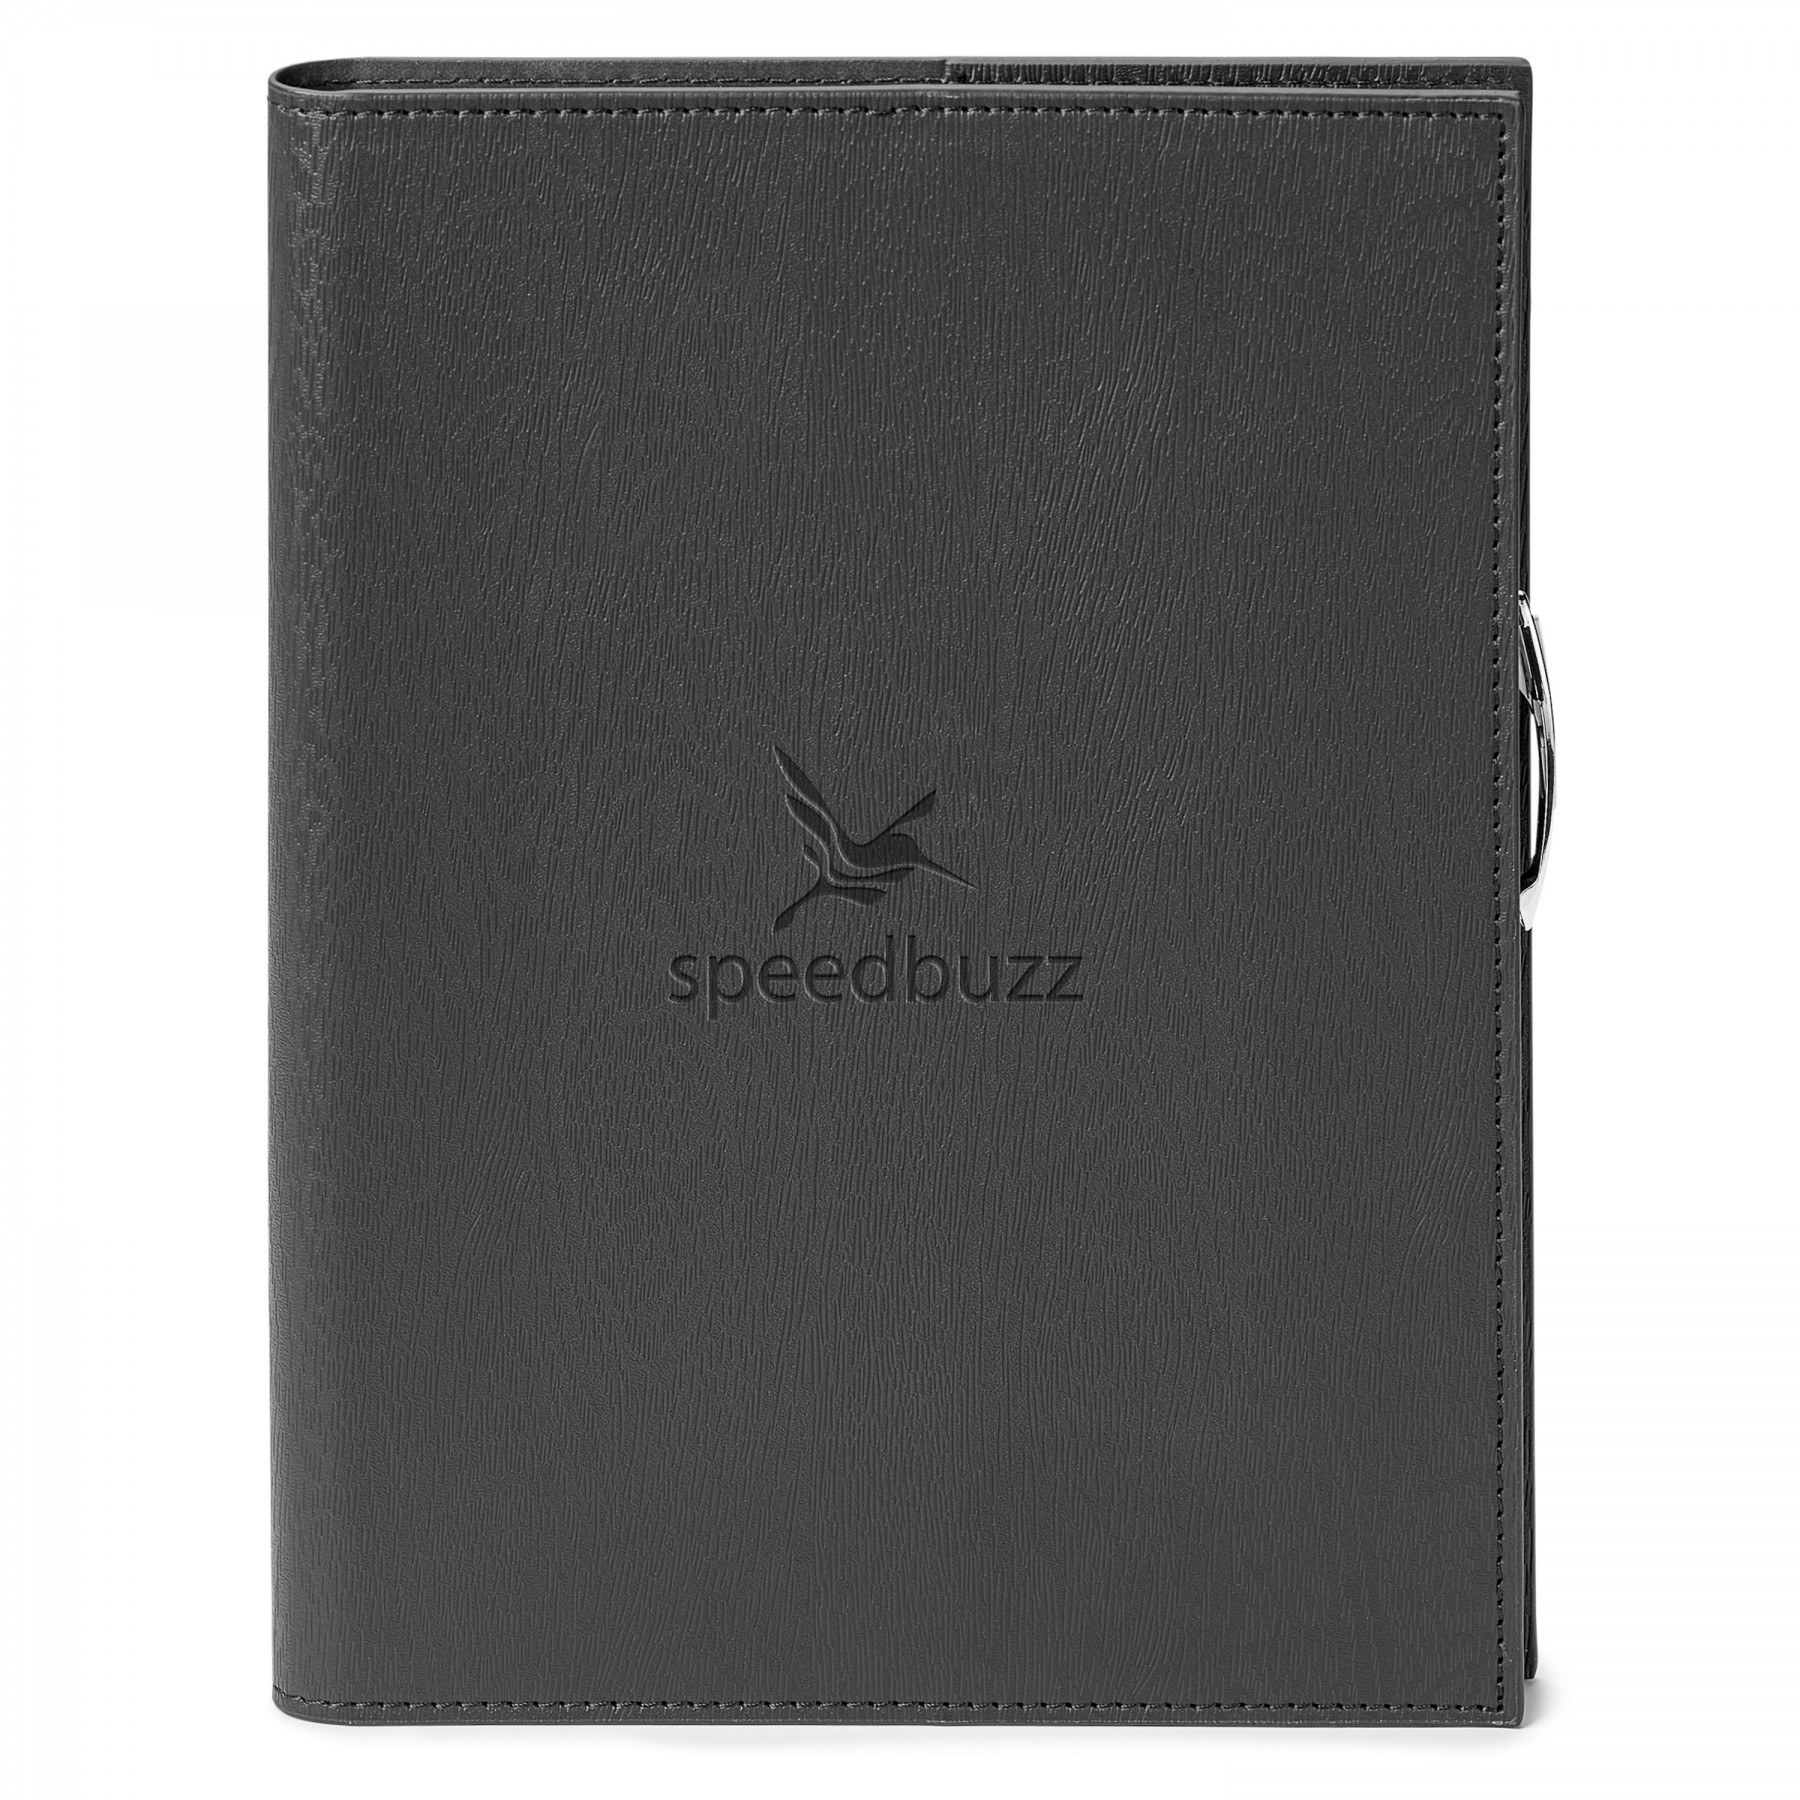 Ronan Refillable Journal Combo, ST4592, Debossed Logo